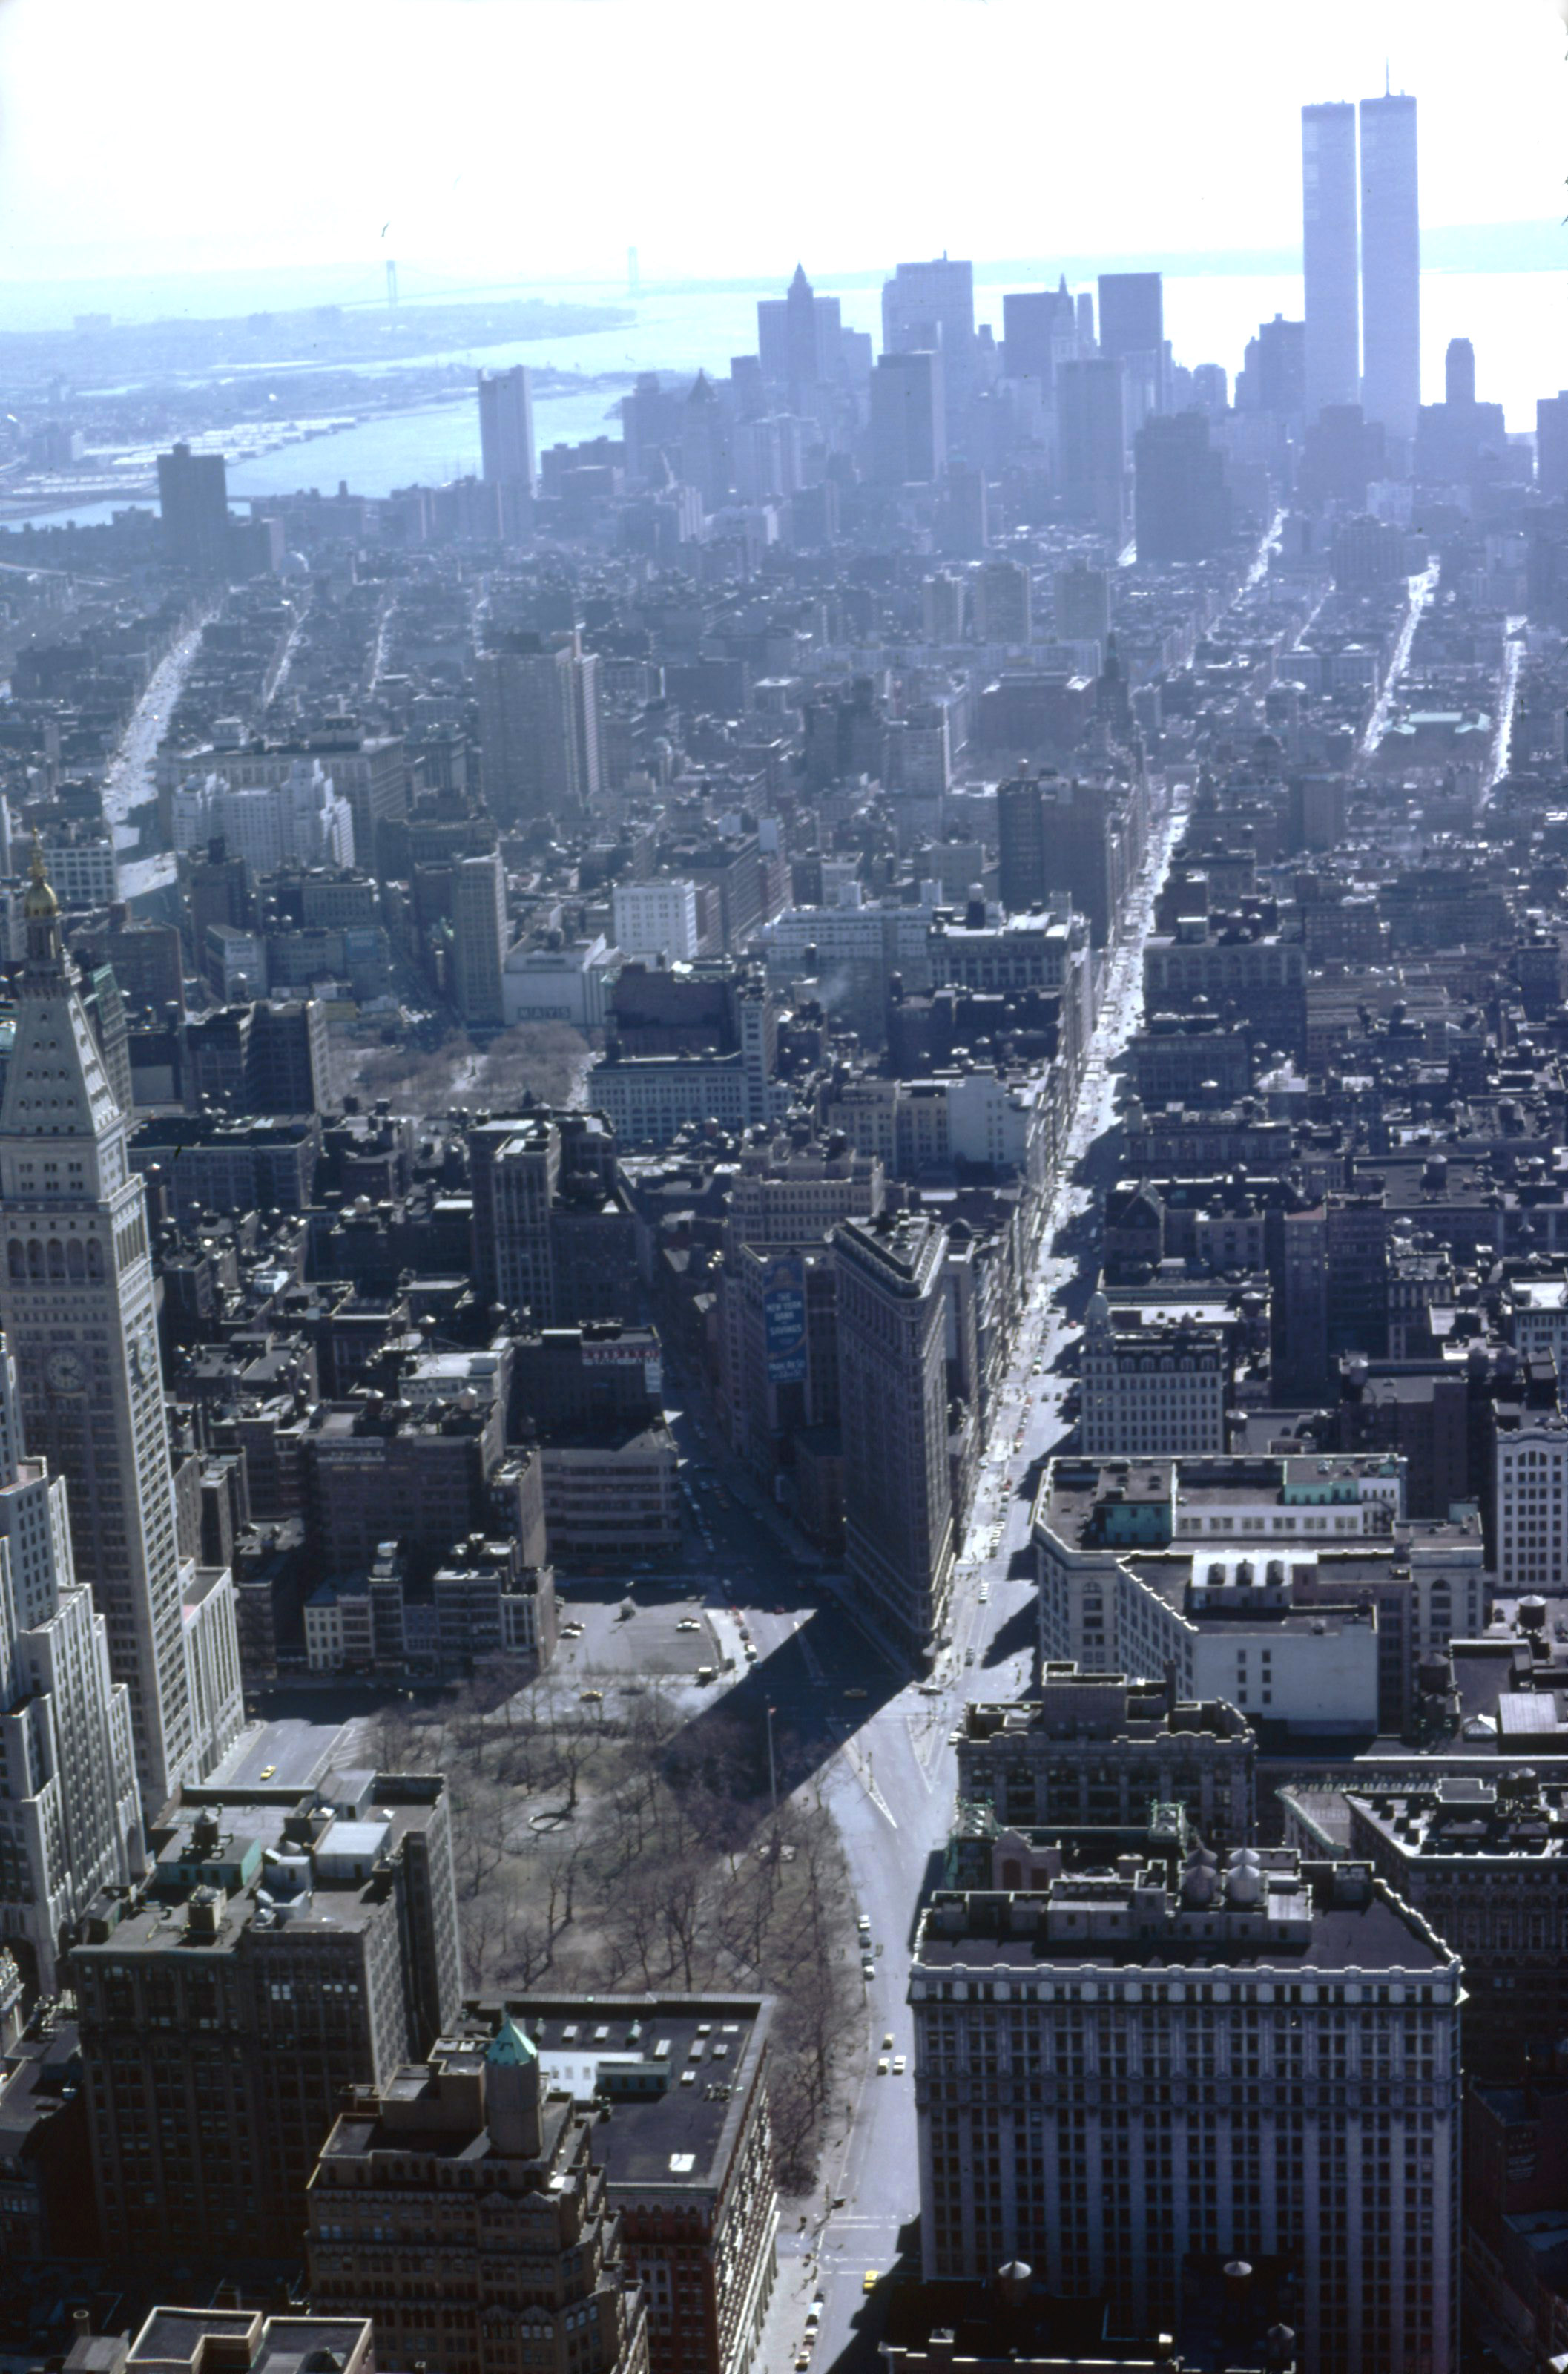 New York Sfondi 3d 58 Immagini: Color Slides Of New York City, April 1979